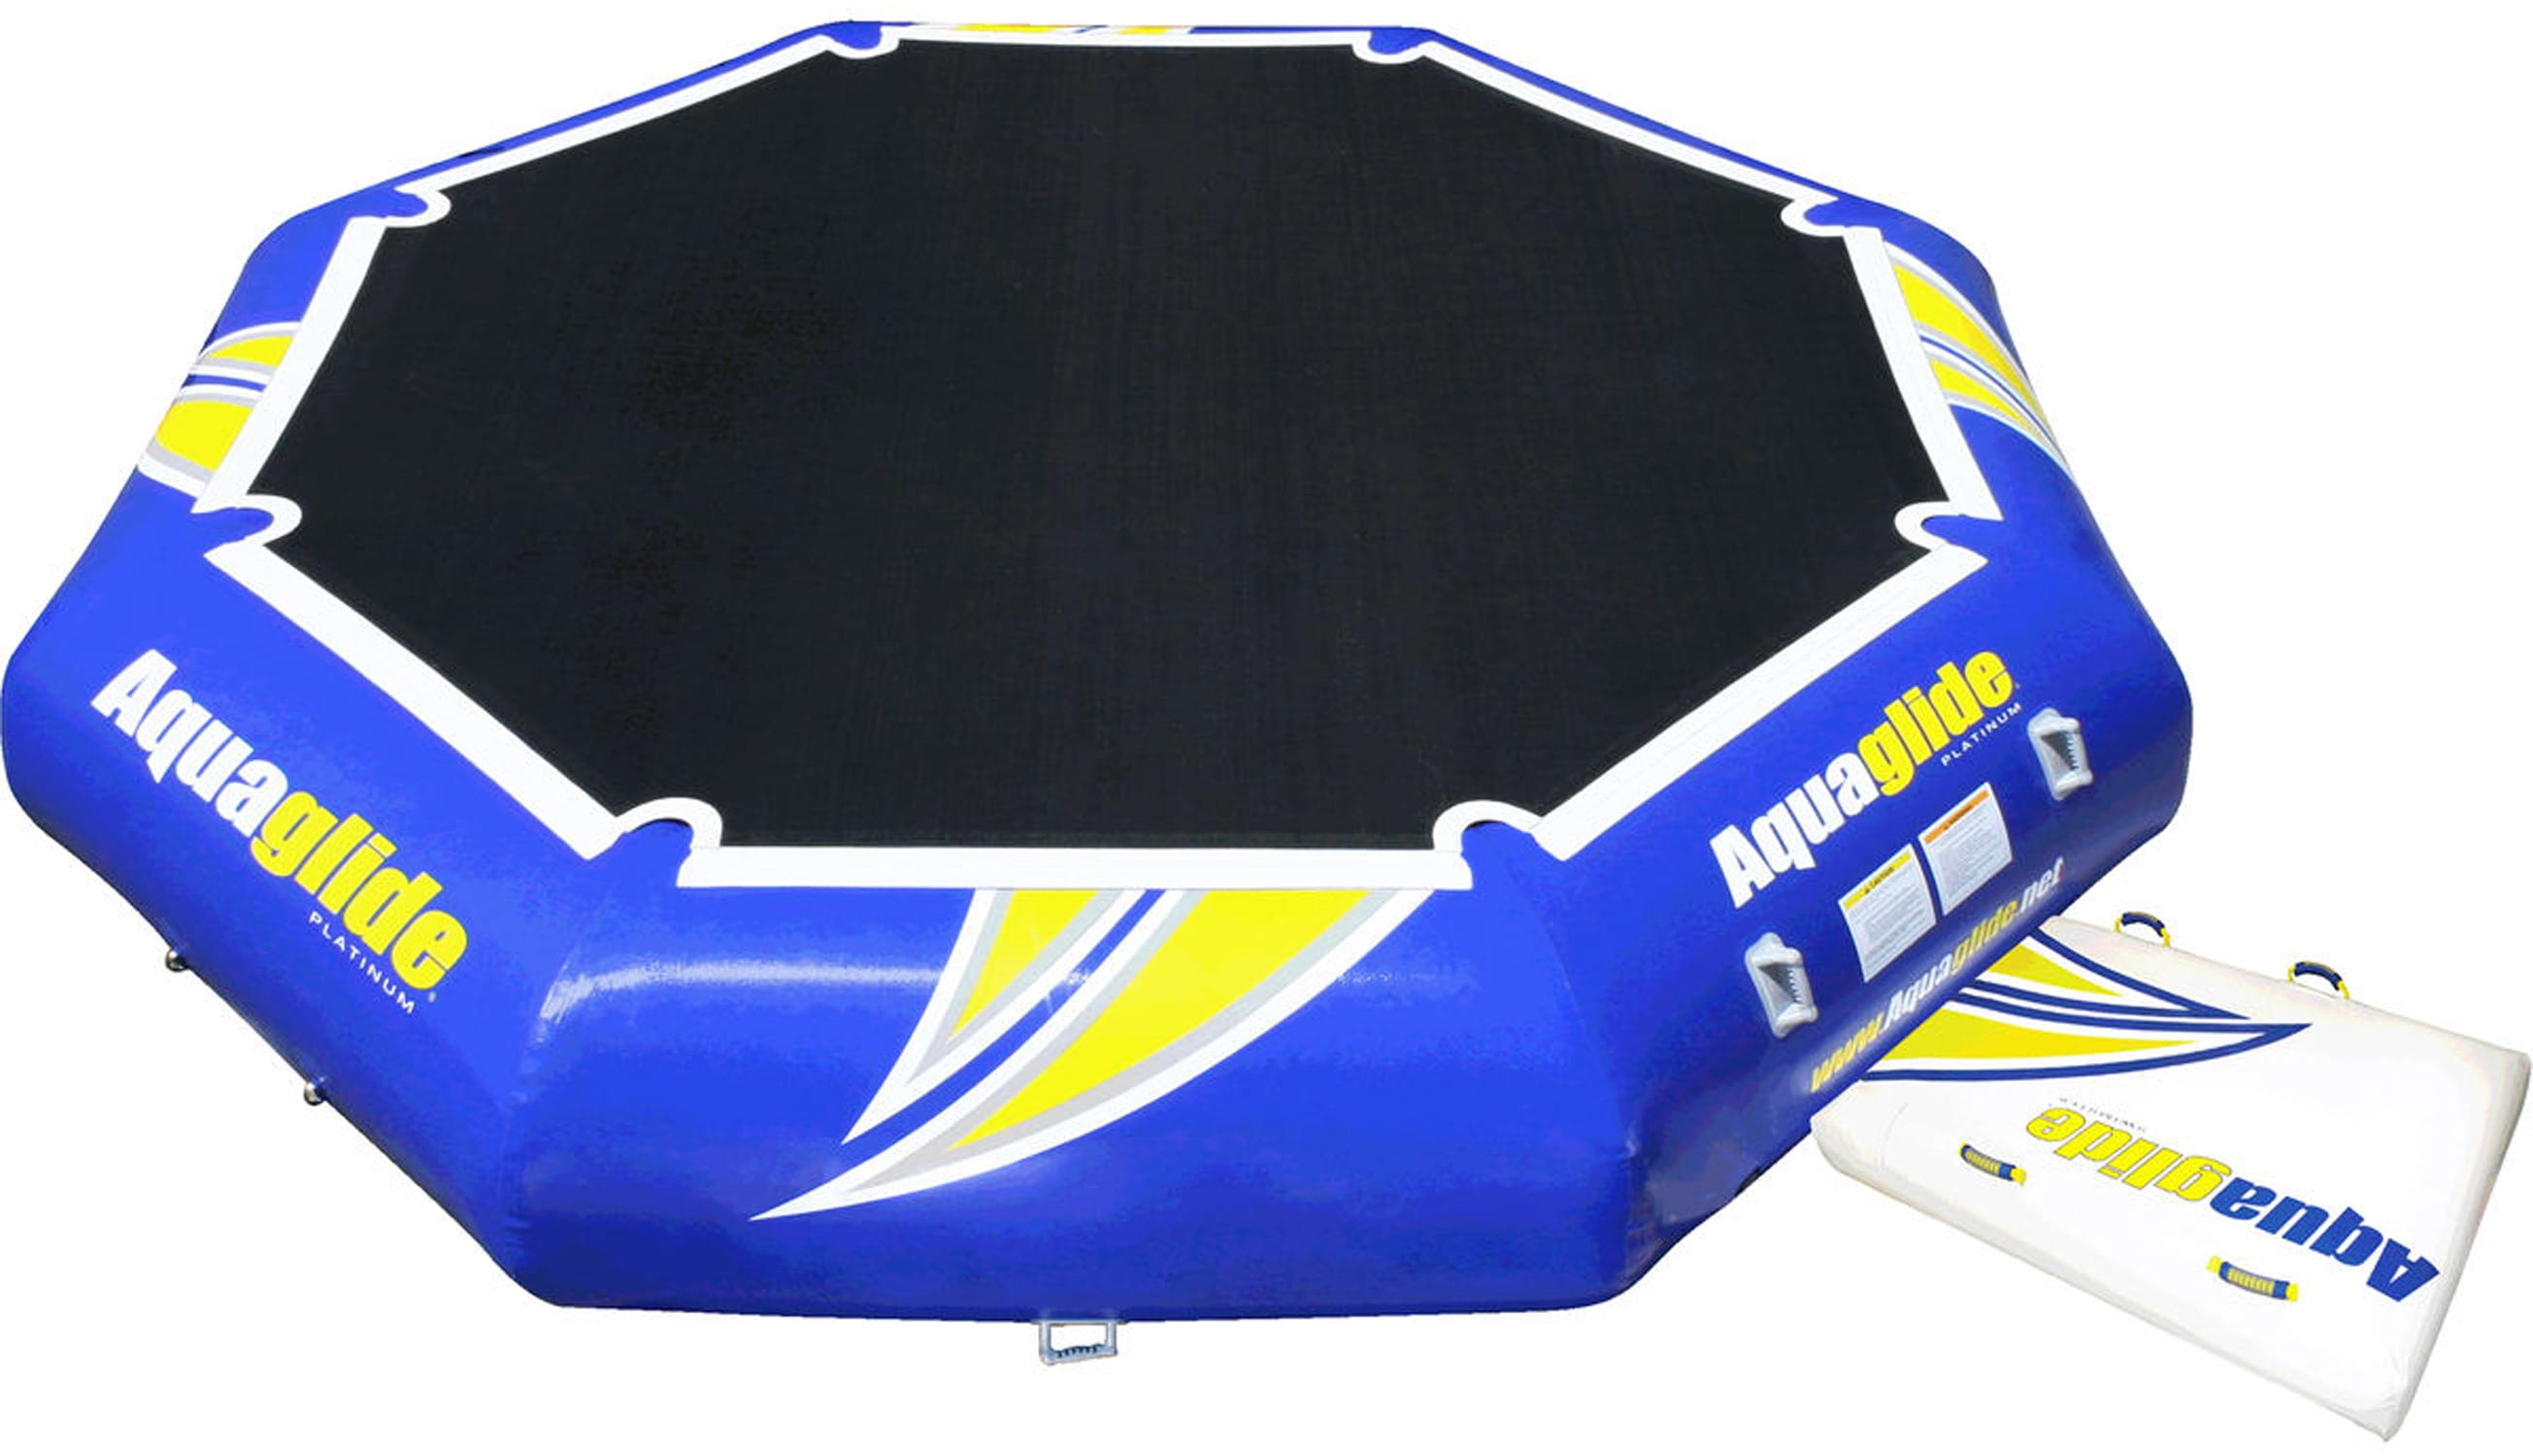 Click here for Aquaglide Rebound Bouncer 20' prices